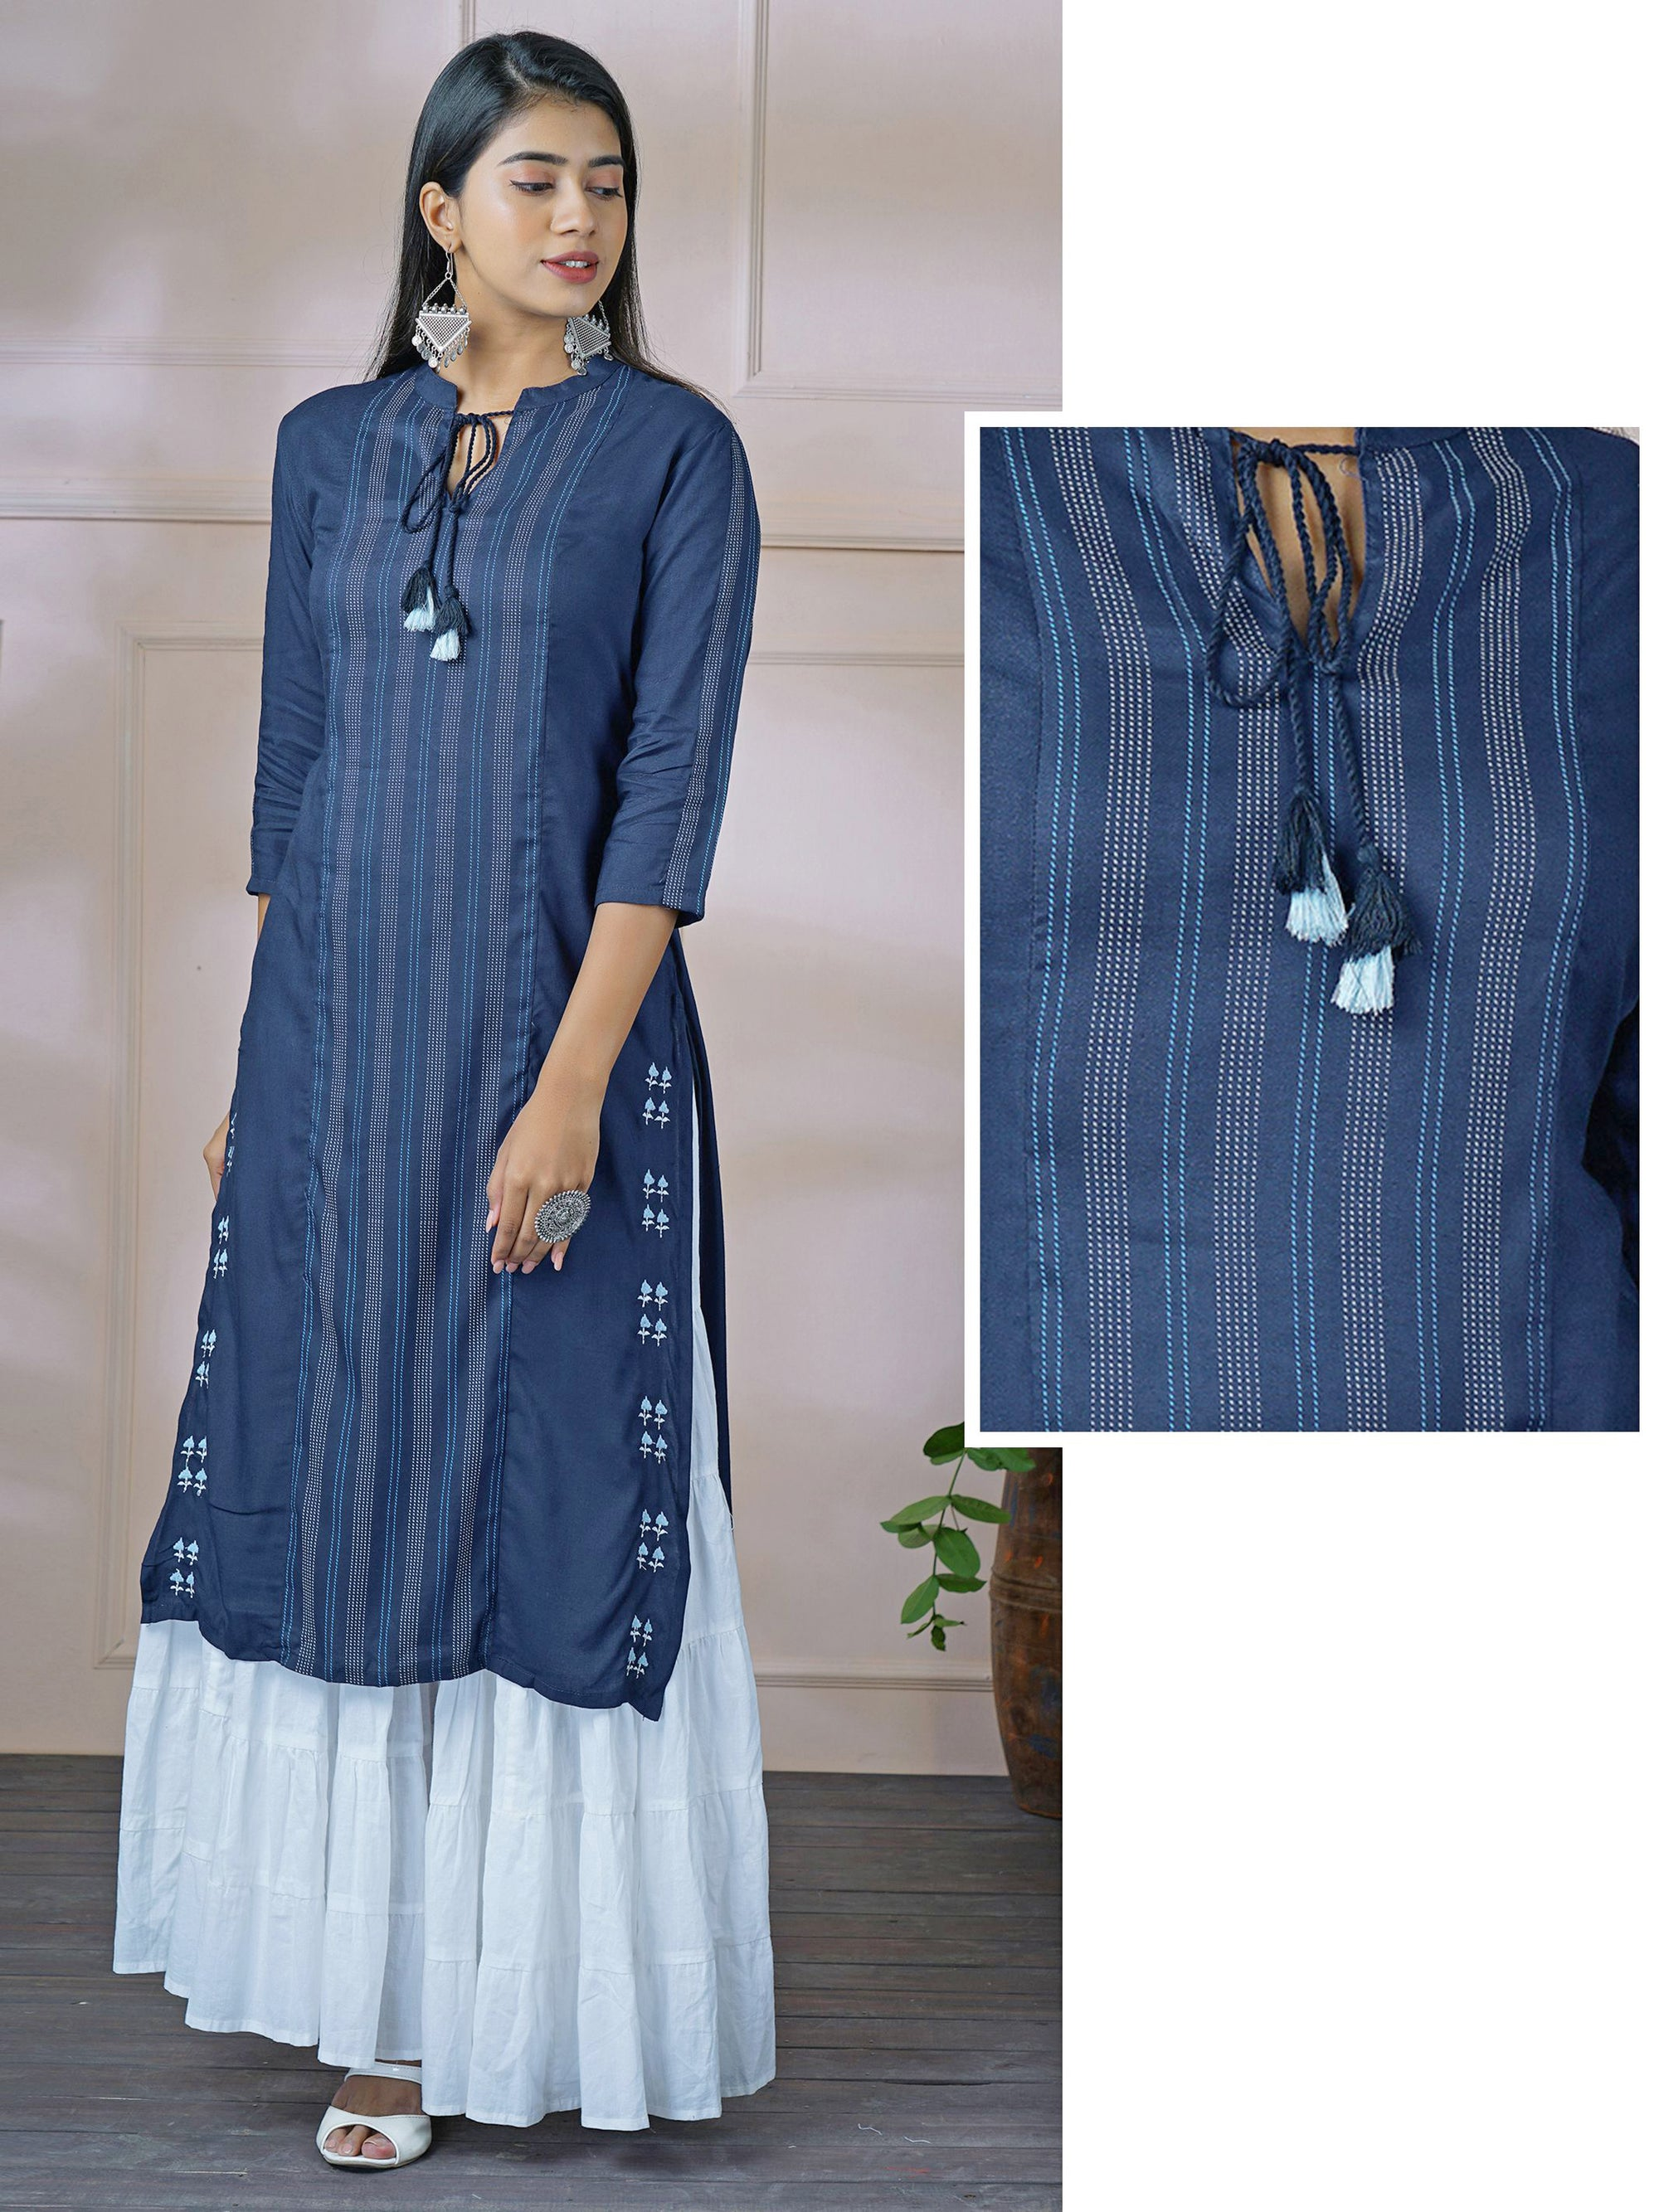 Minimal Chalk Stripes Printed Rayon Kurti – Navy Blue